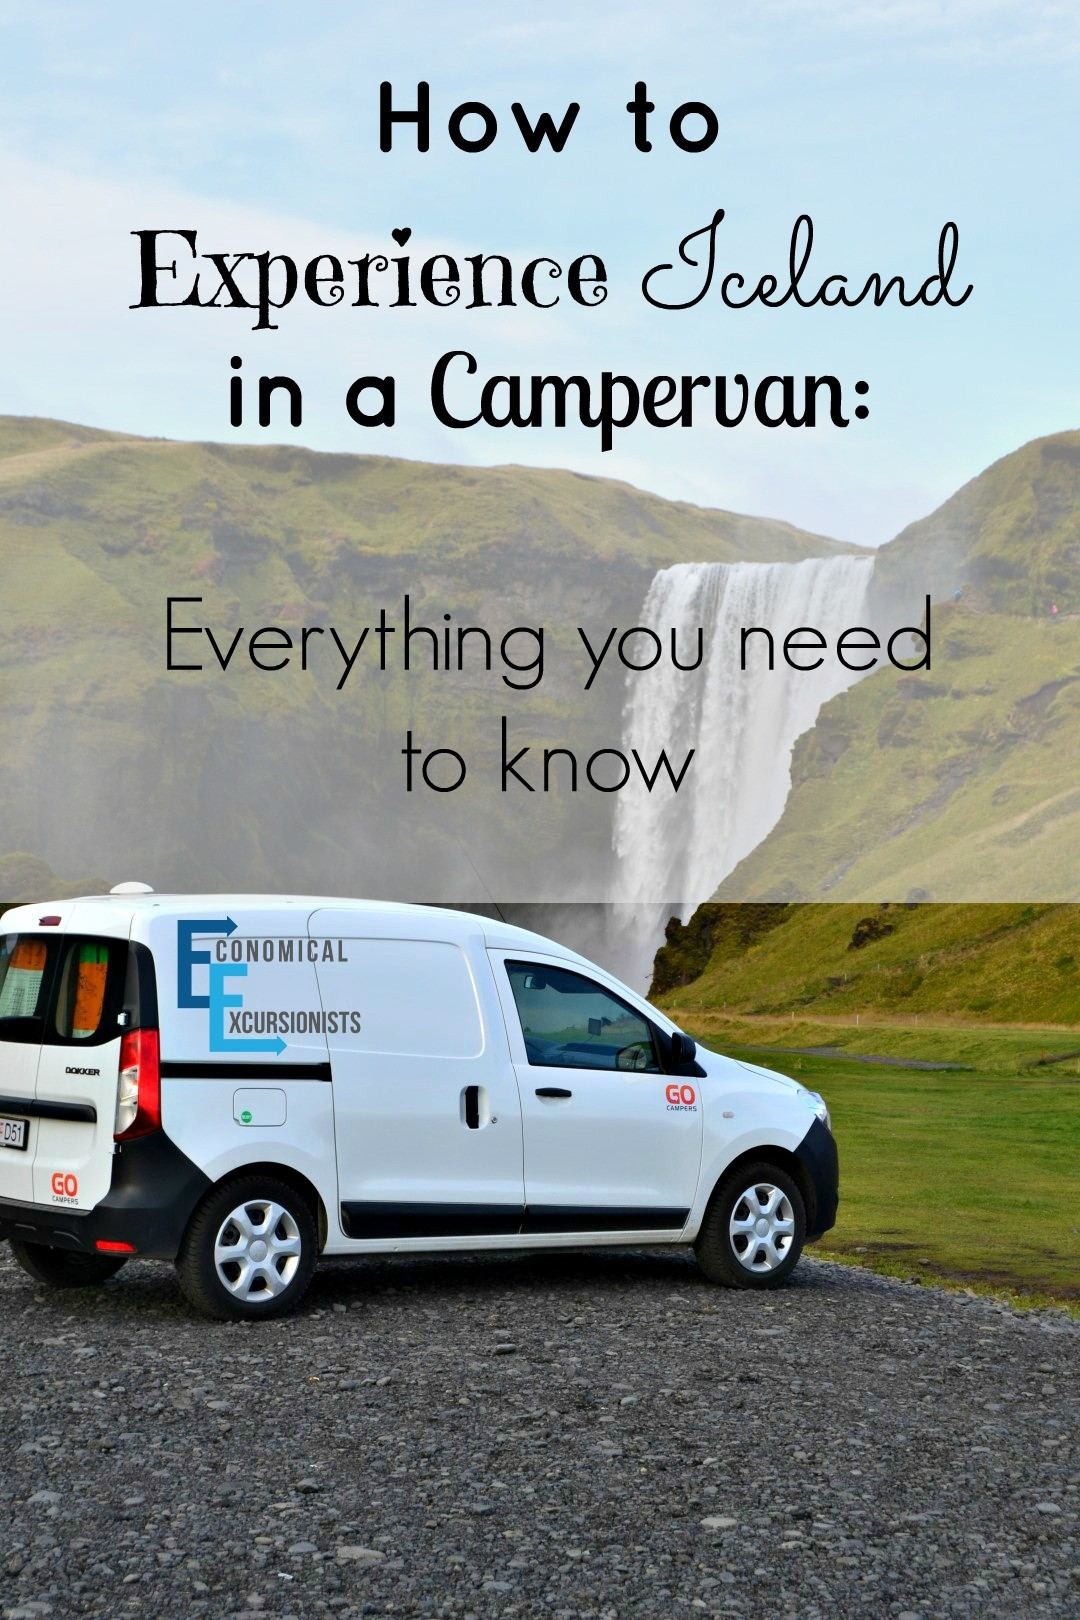 bff52c6821a529 Using a campervan in Iceland is the way to go! You get both a vehicle